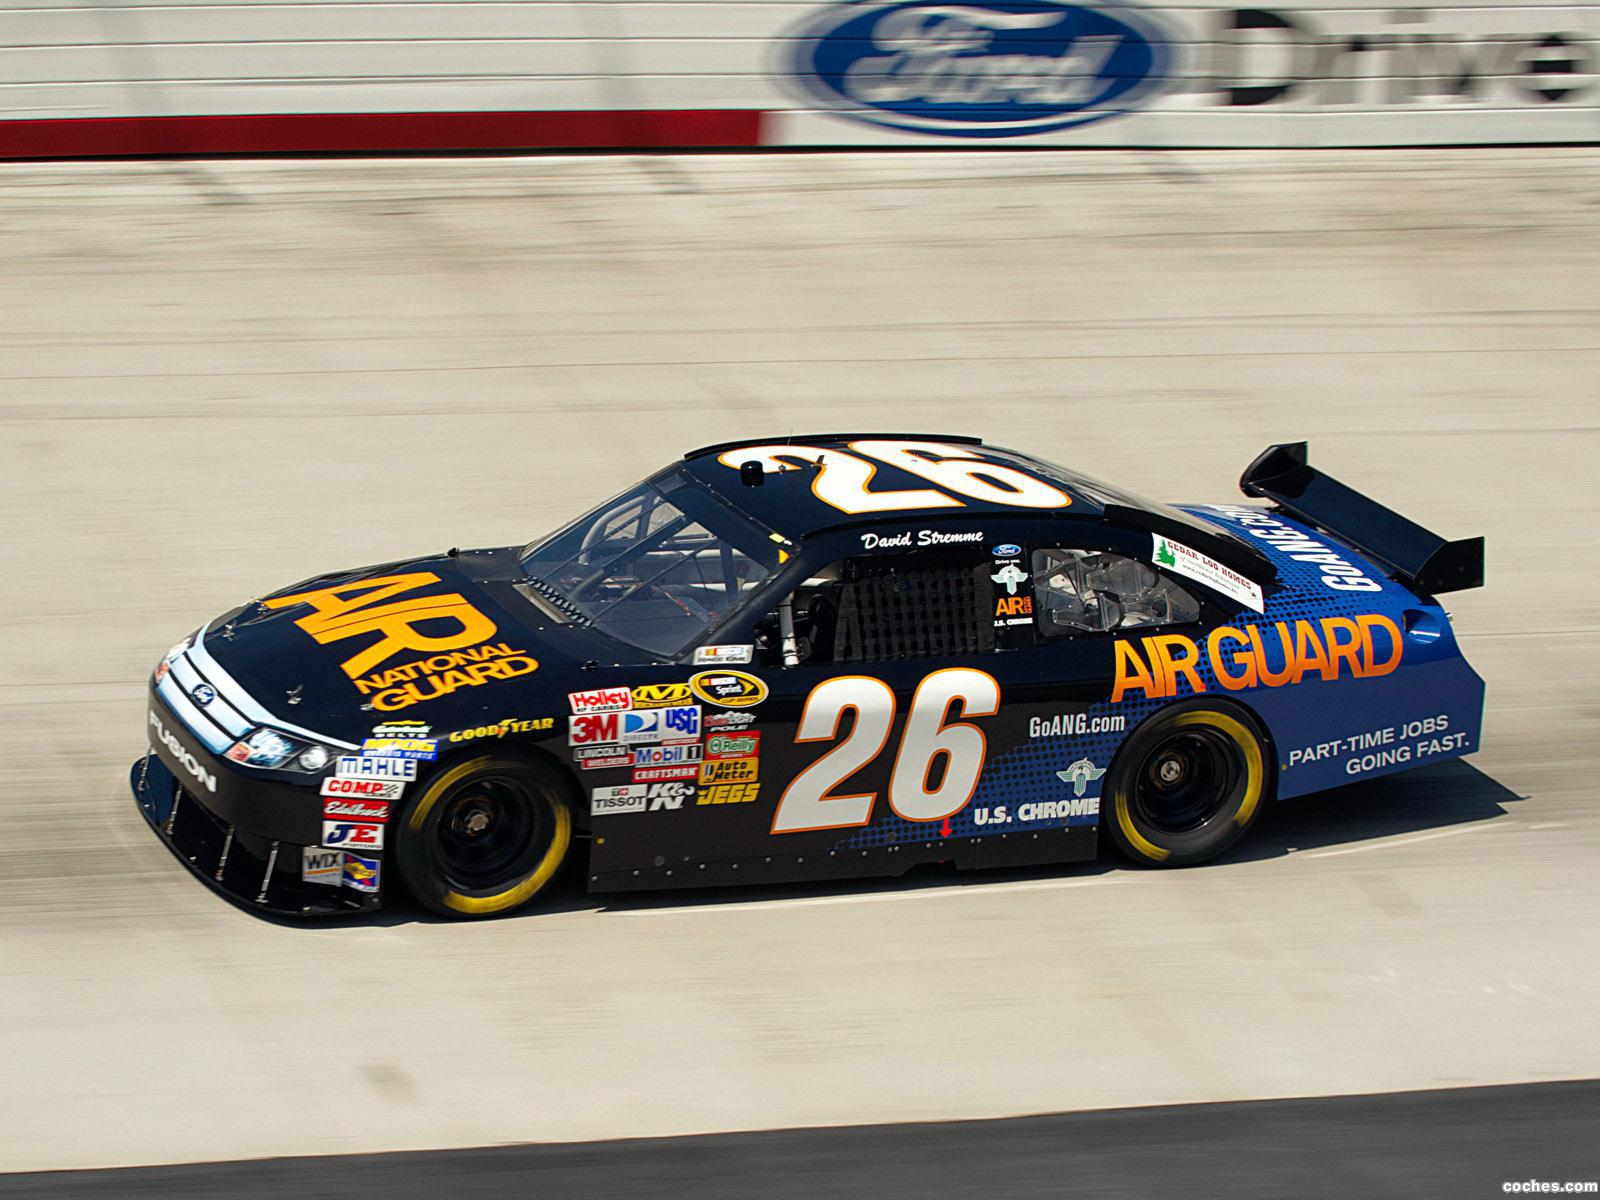 Foto 12 de Ford Fusion NASCAR Sprint Cup Series Race Car 2012